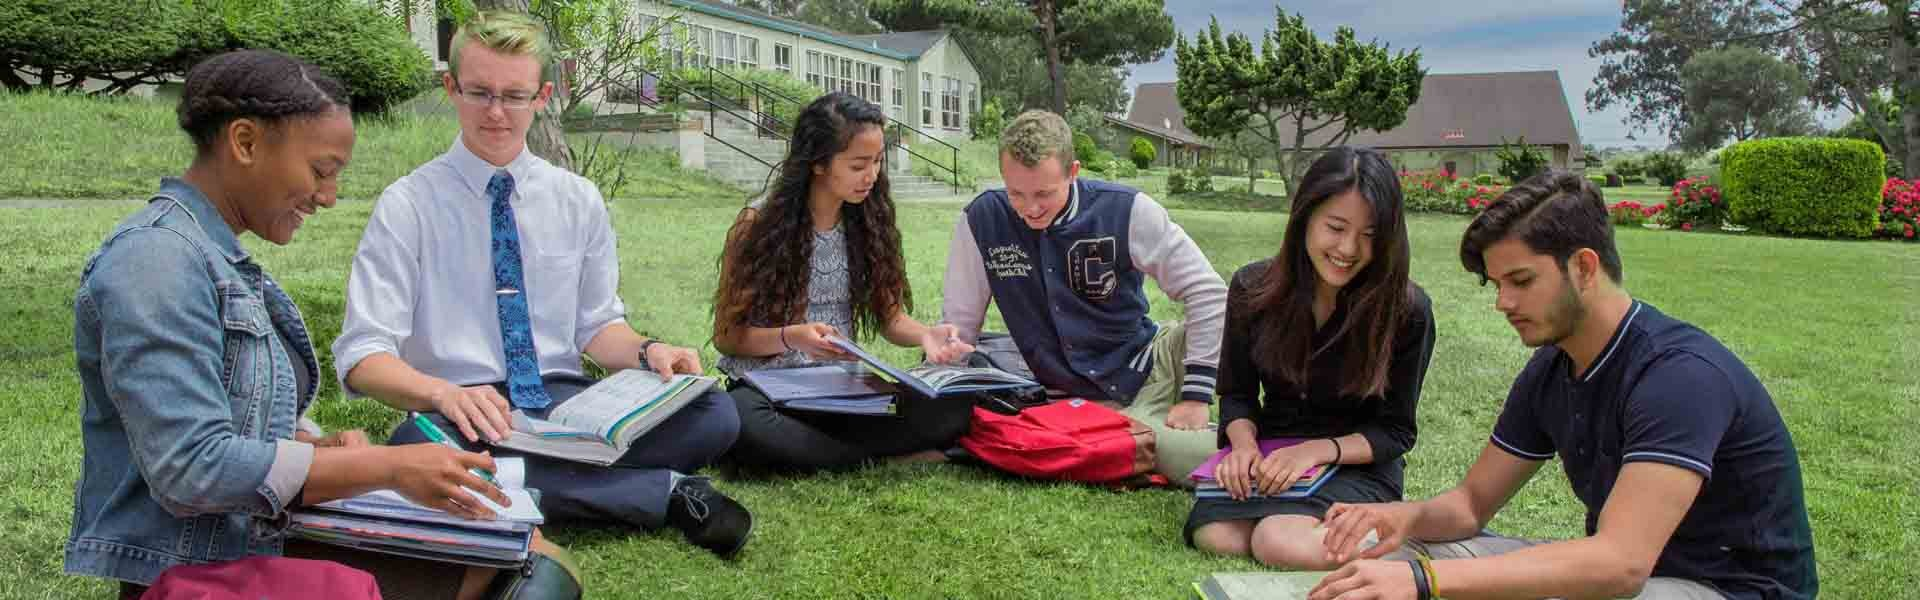 Monterey Bay Academy California USA Students 2019